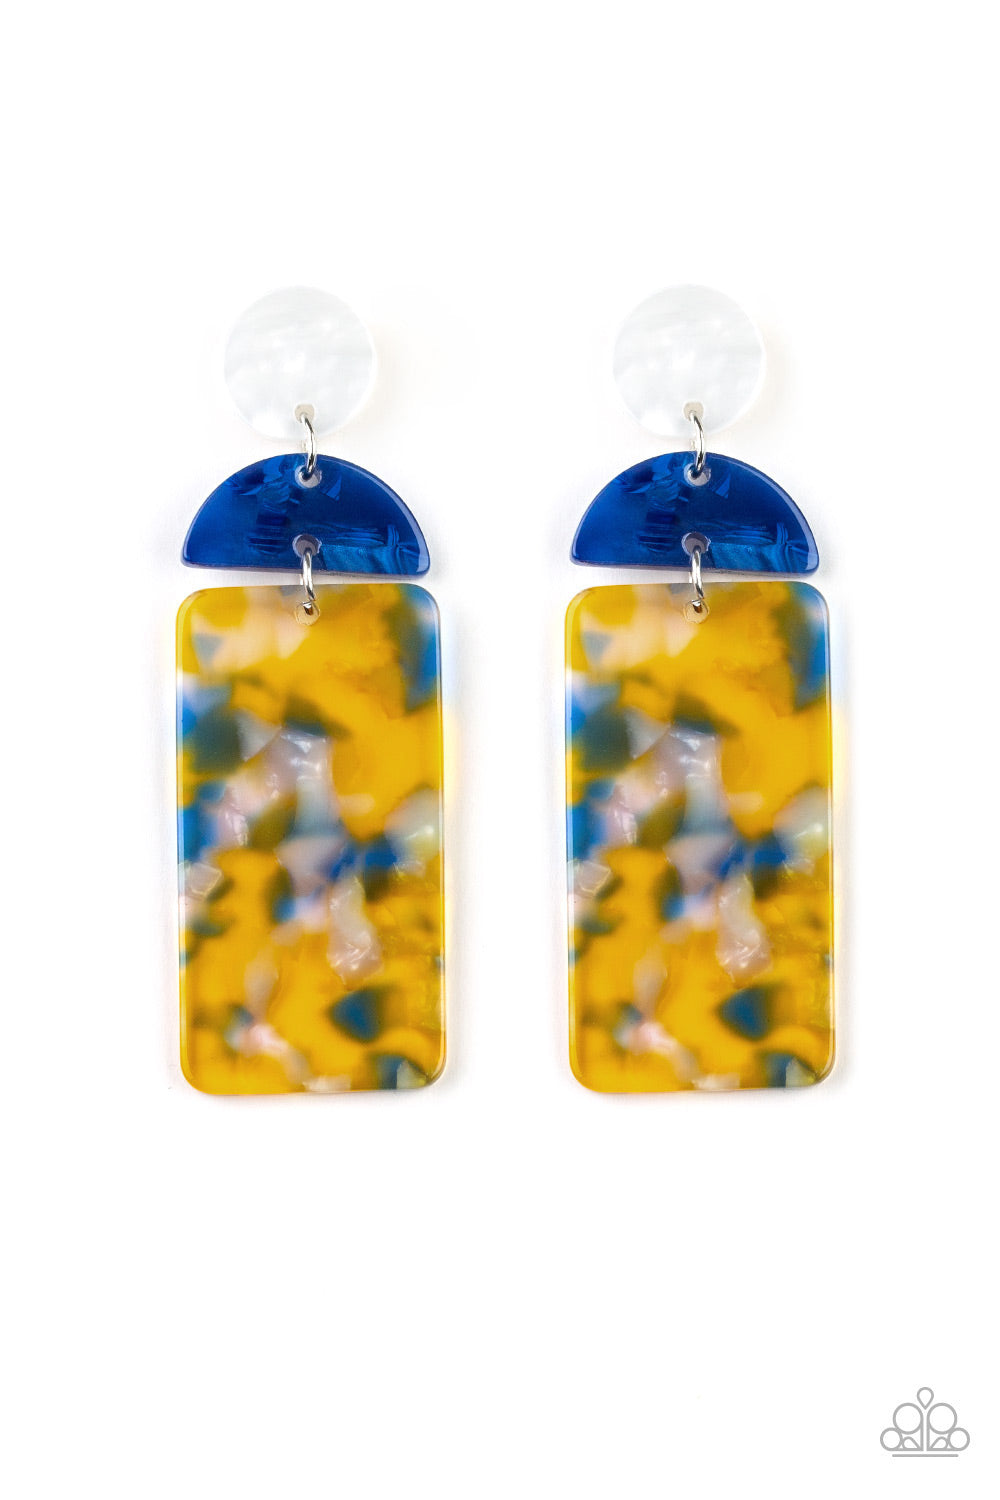 Paparazzi Accessories - HAUTE On Their Heels - Yellow Earrings - JMJ Jewelry Collection